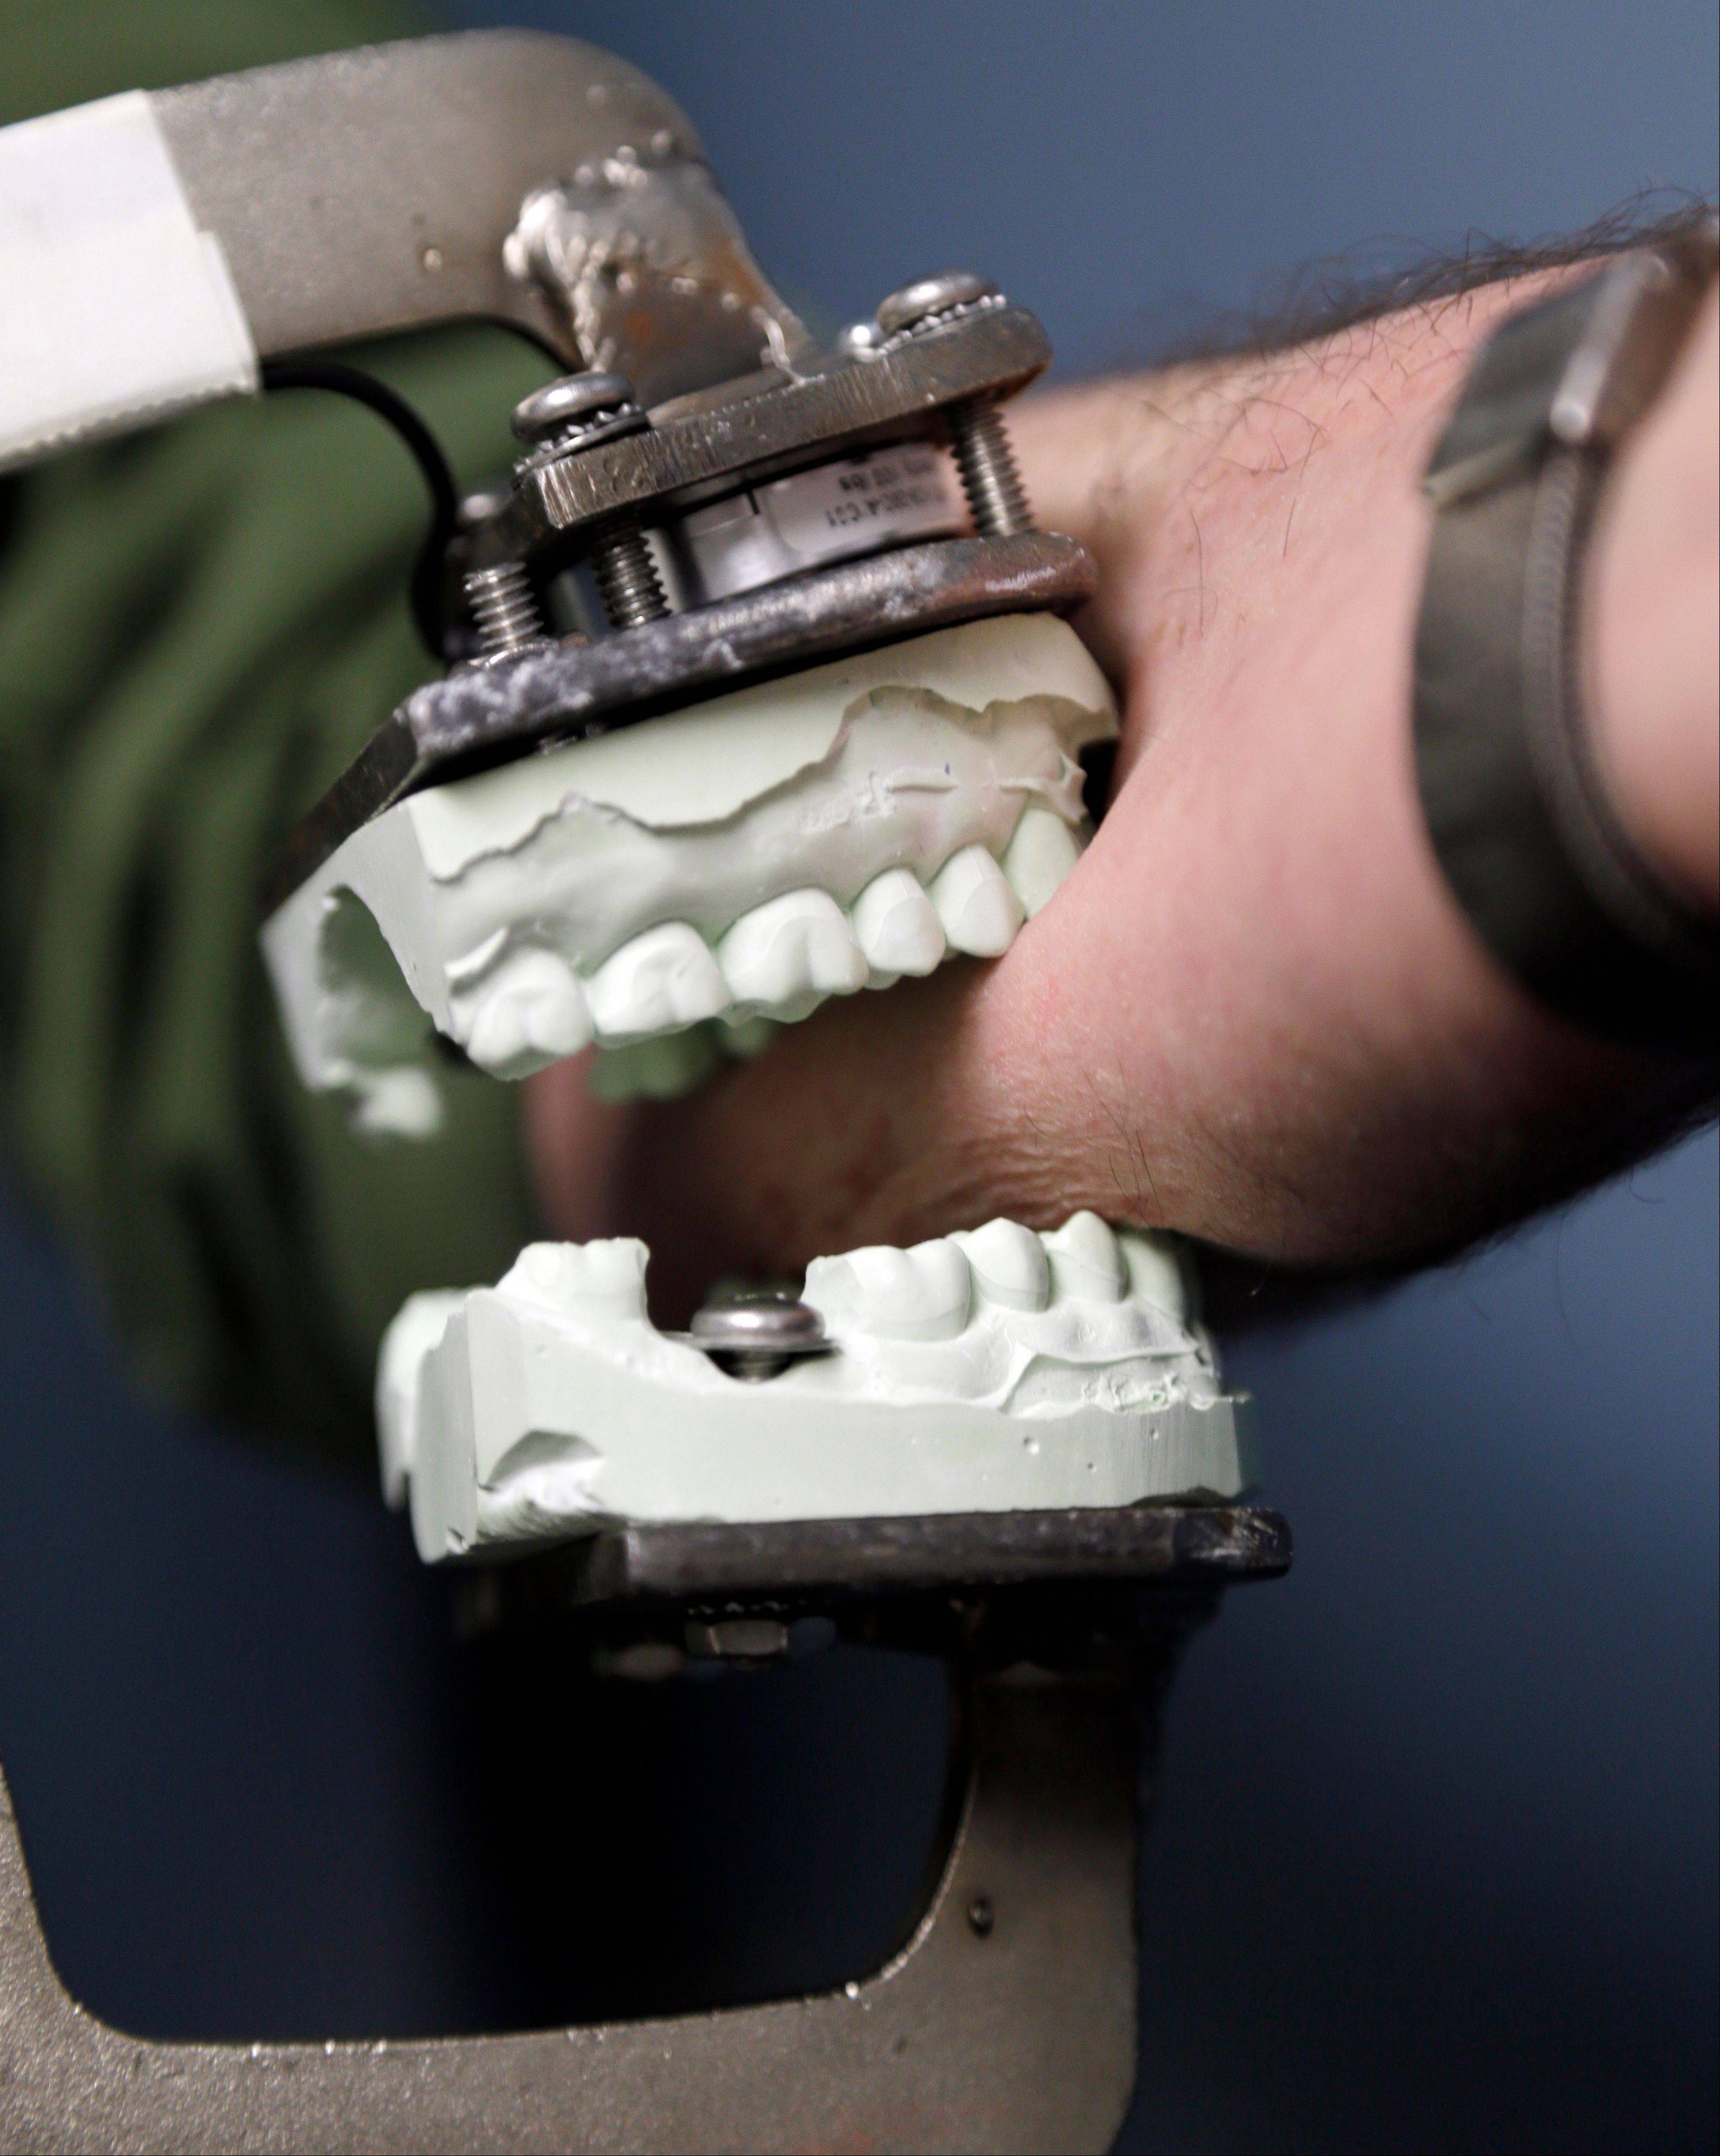 Peter Bush, a research scientist at the University at Buffalo, demonstrates a modified Vise-Grip tool attached to a dental mold that is used for test bites in skin. Bite marks, long accepted as criminal evidence, now face doubts about reliability.